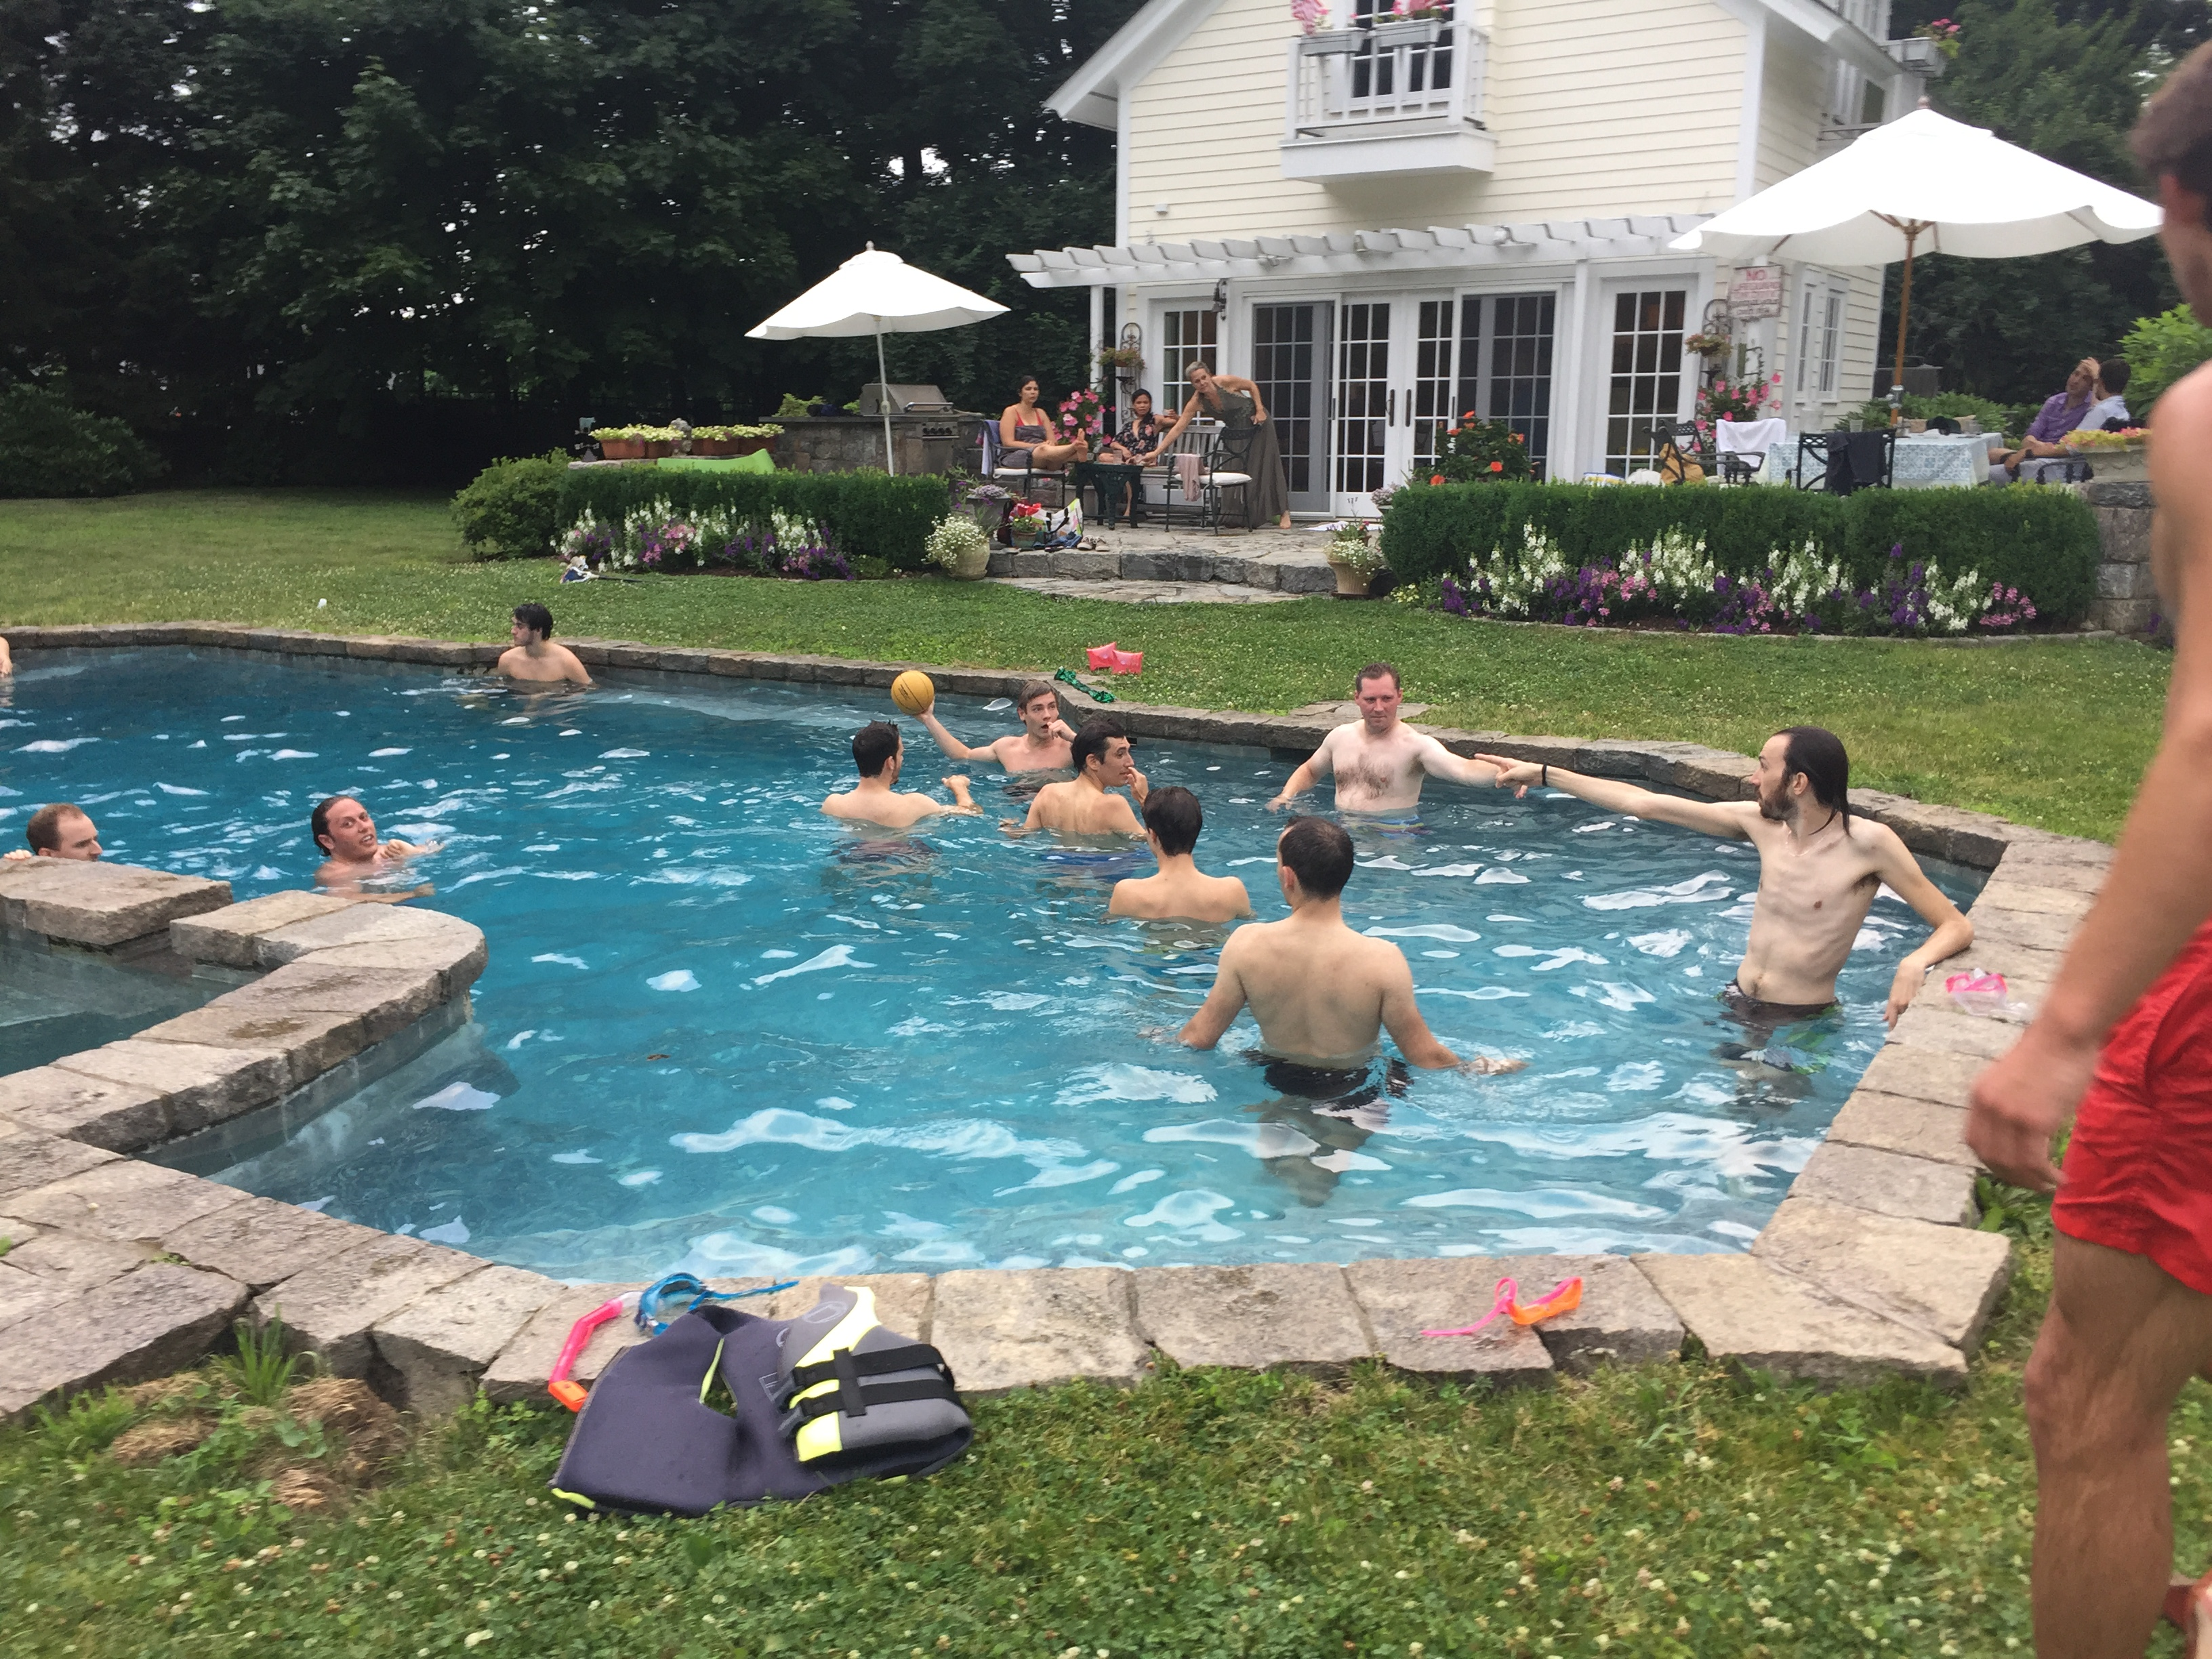 July 4th Barbecue & Pool Party